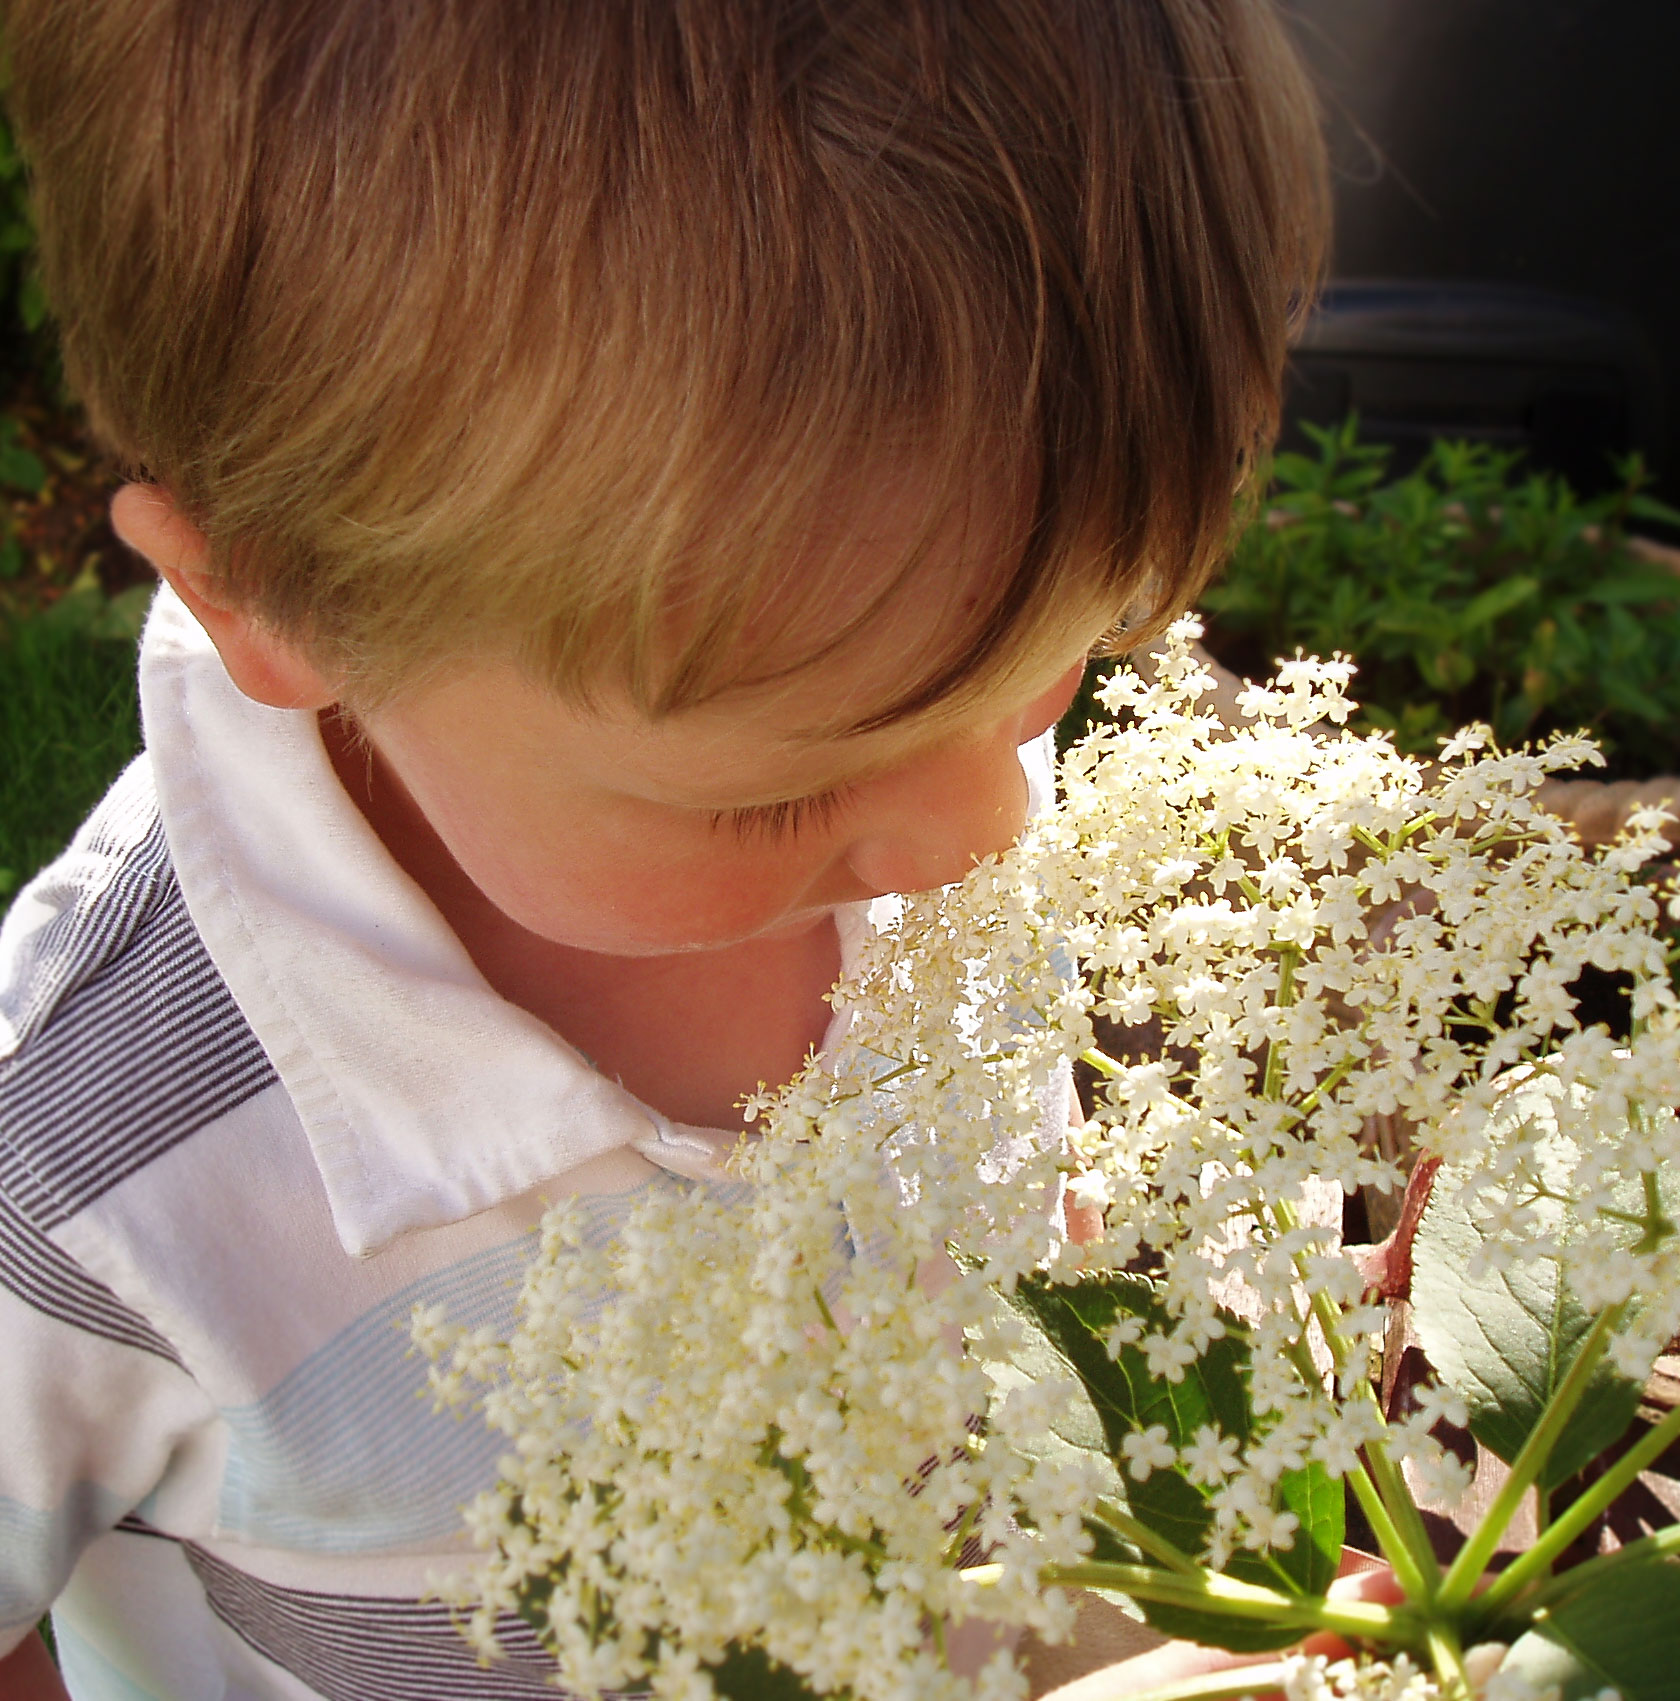 T smelling elderflowers